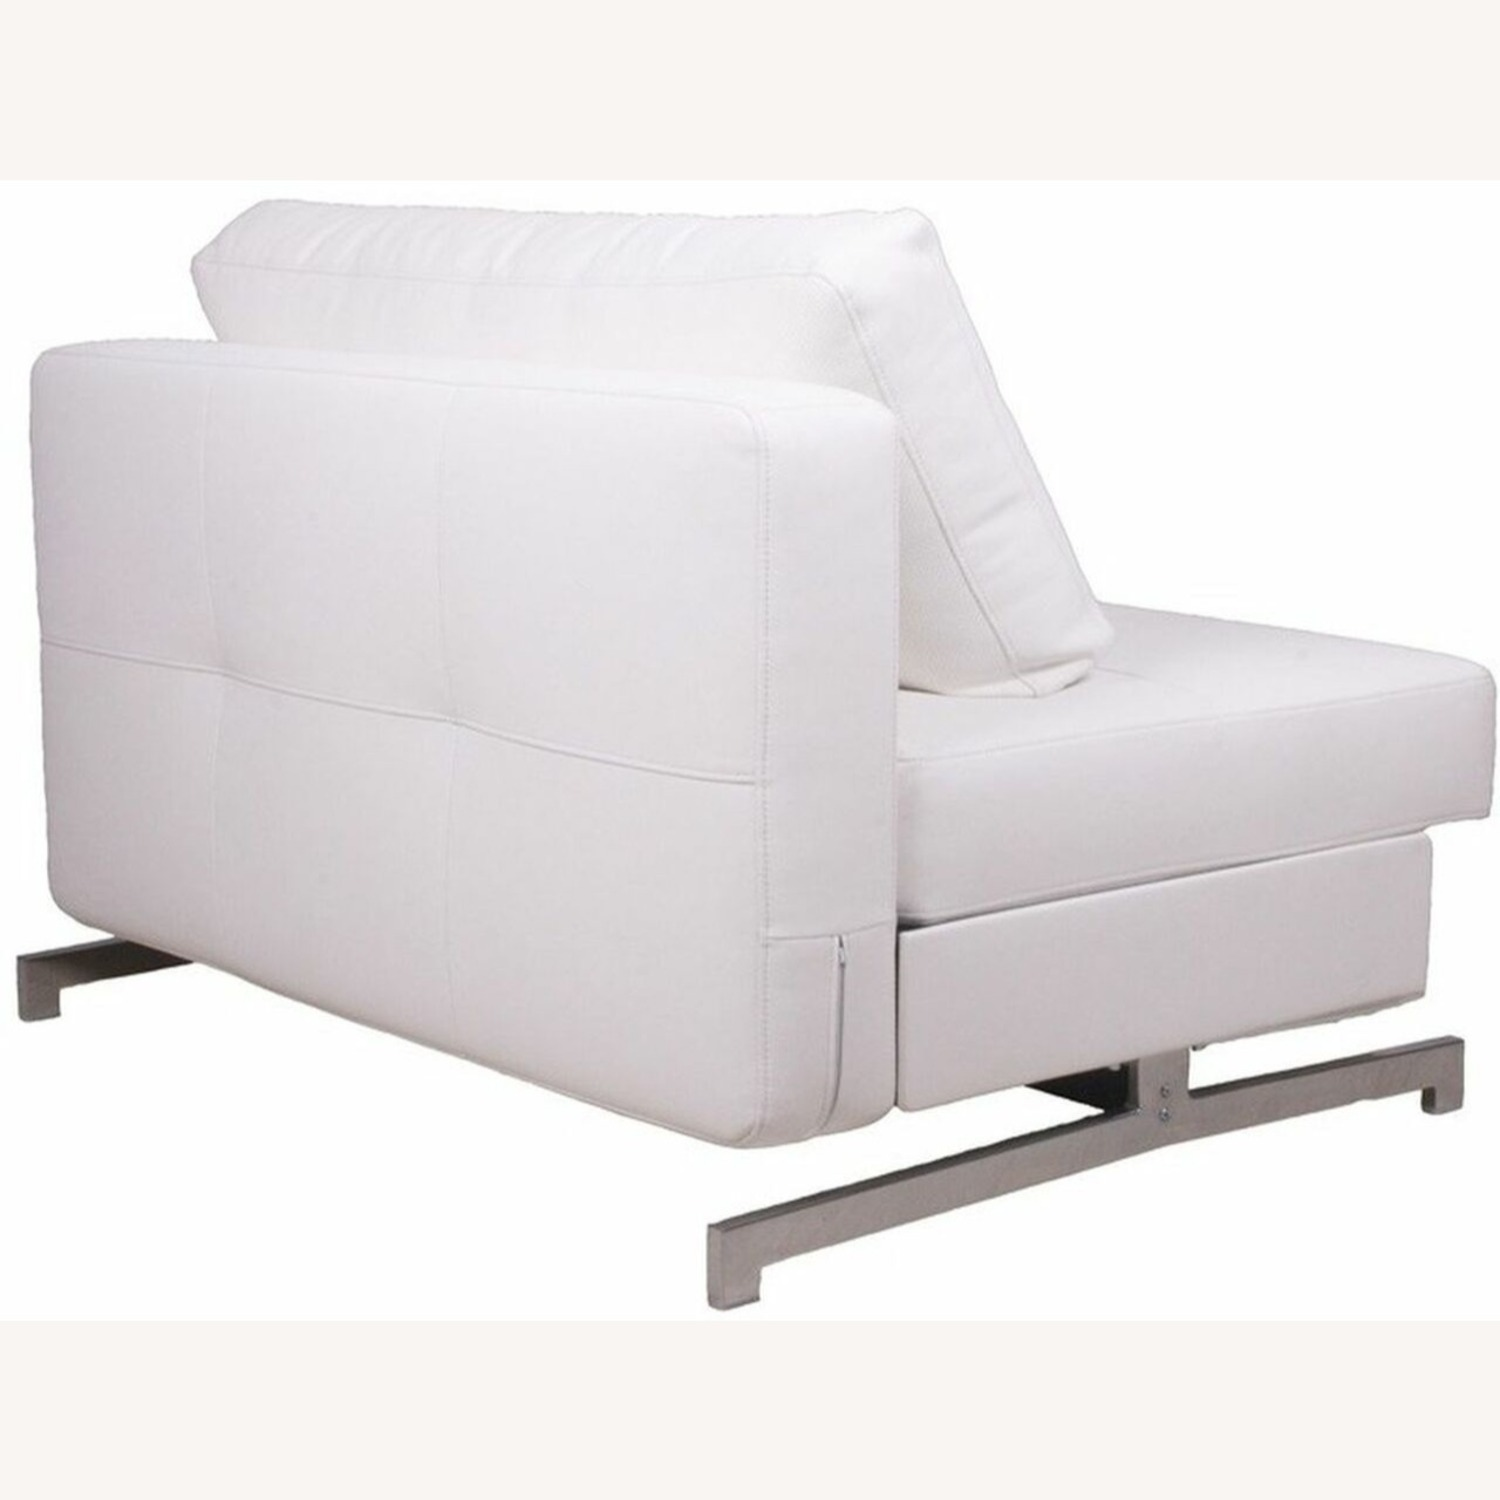 Sofa Bed In White Plush Upholstery W/ Steel Frame - image-1